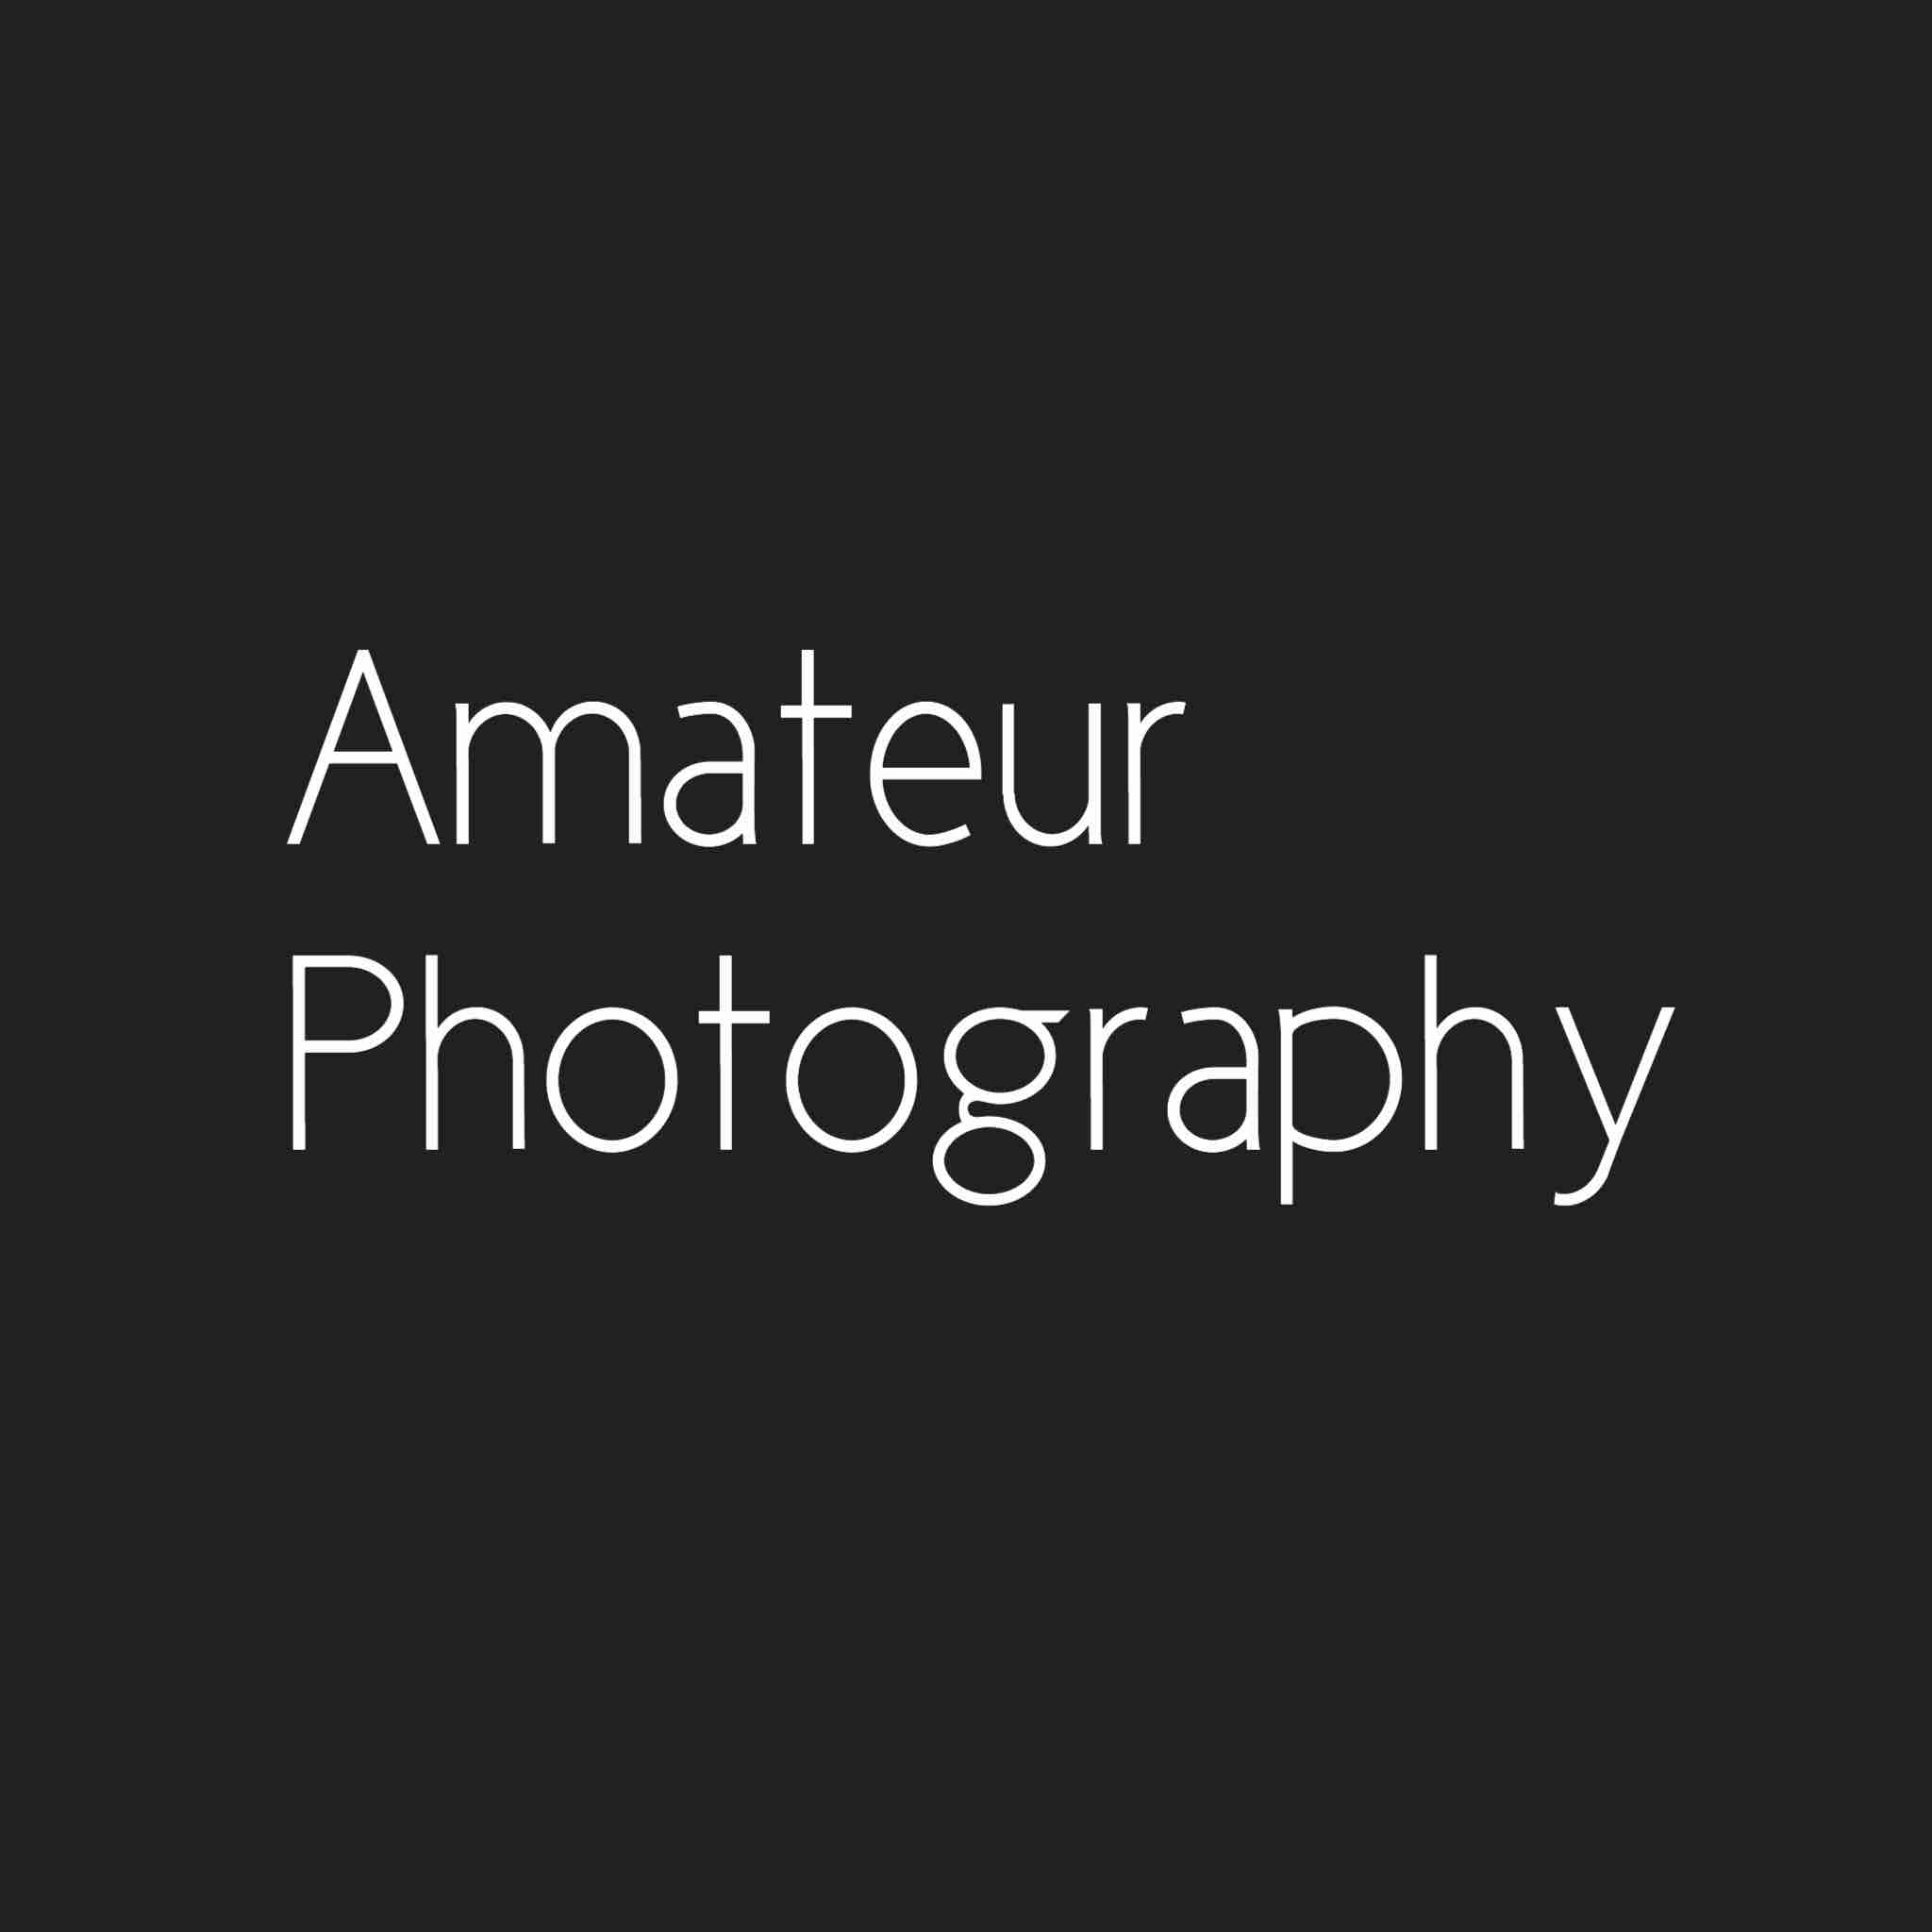 Amateur Photography - logo